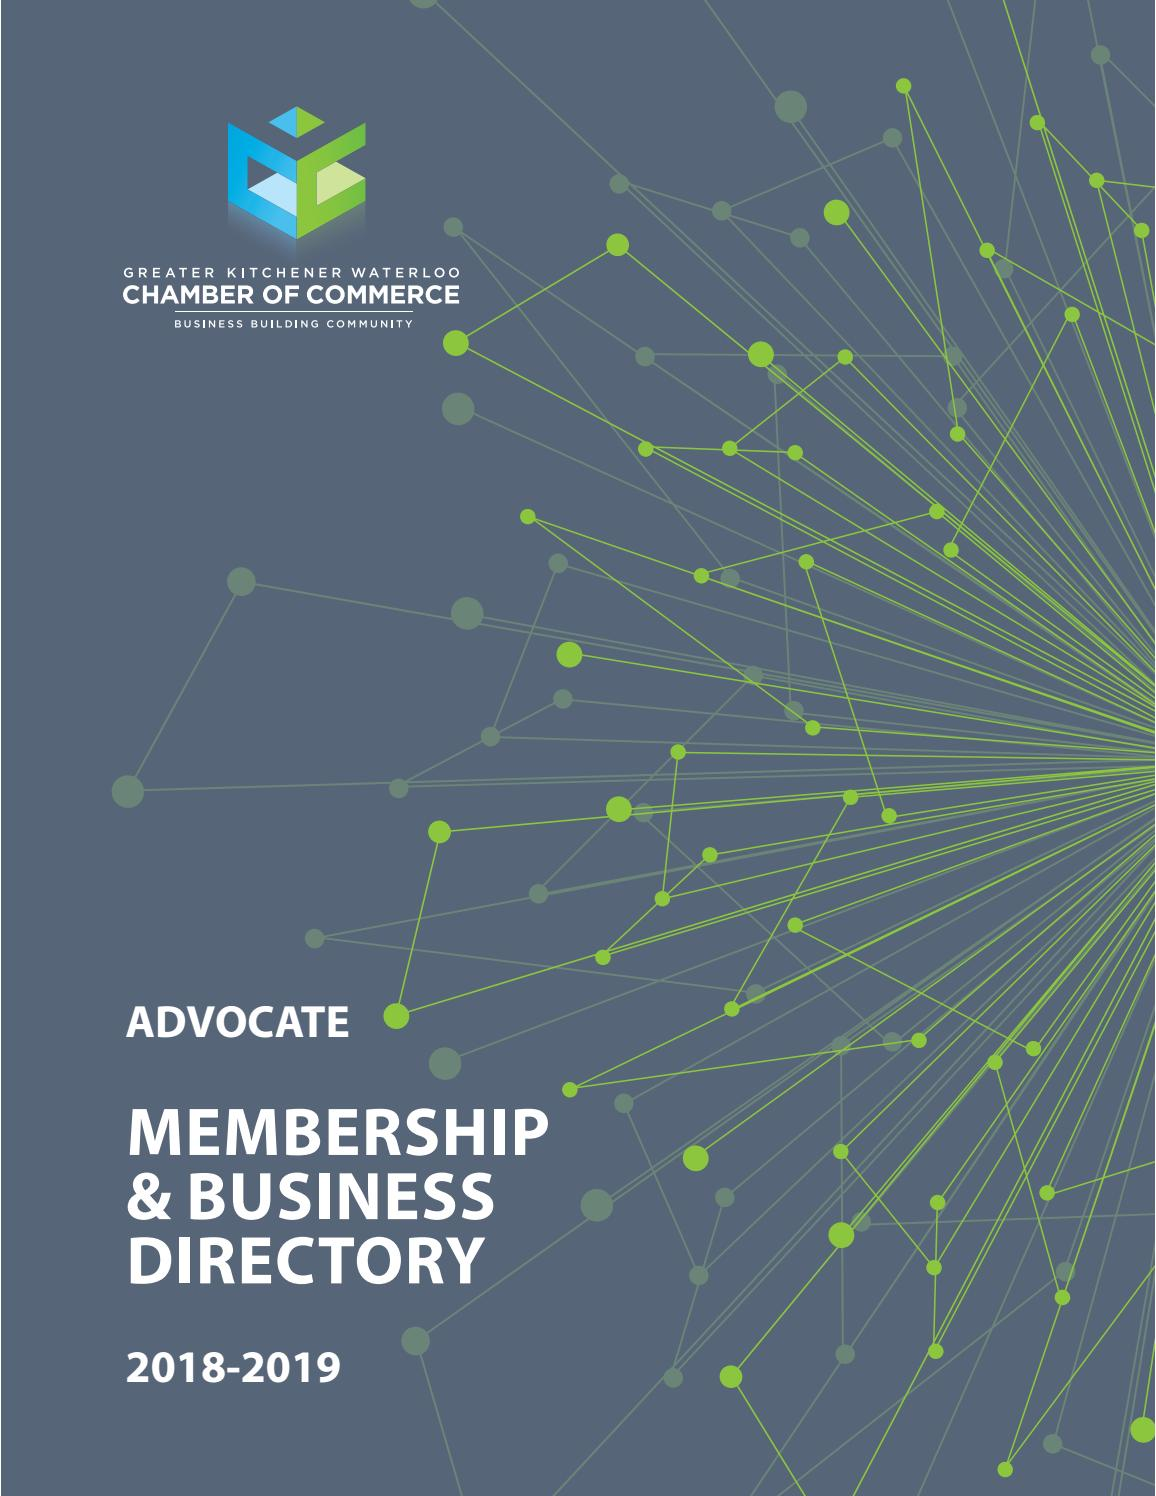 Membership and Business Directory 2018-2019 by Natalie